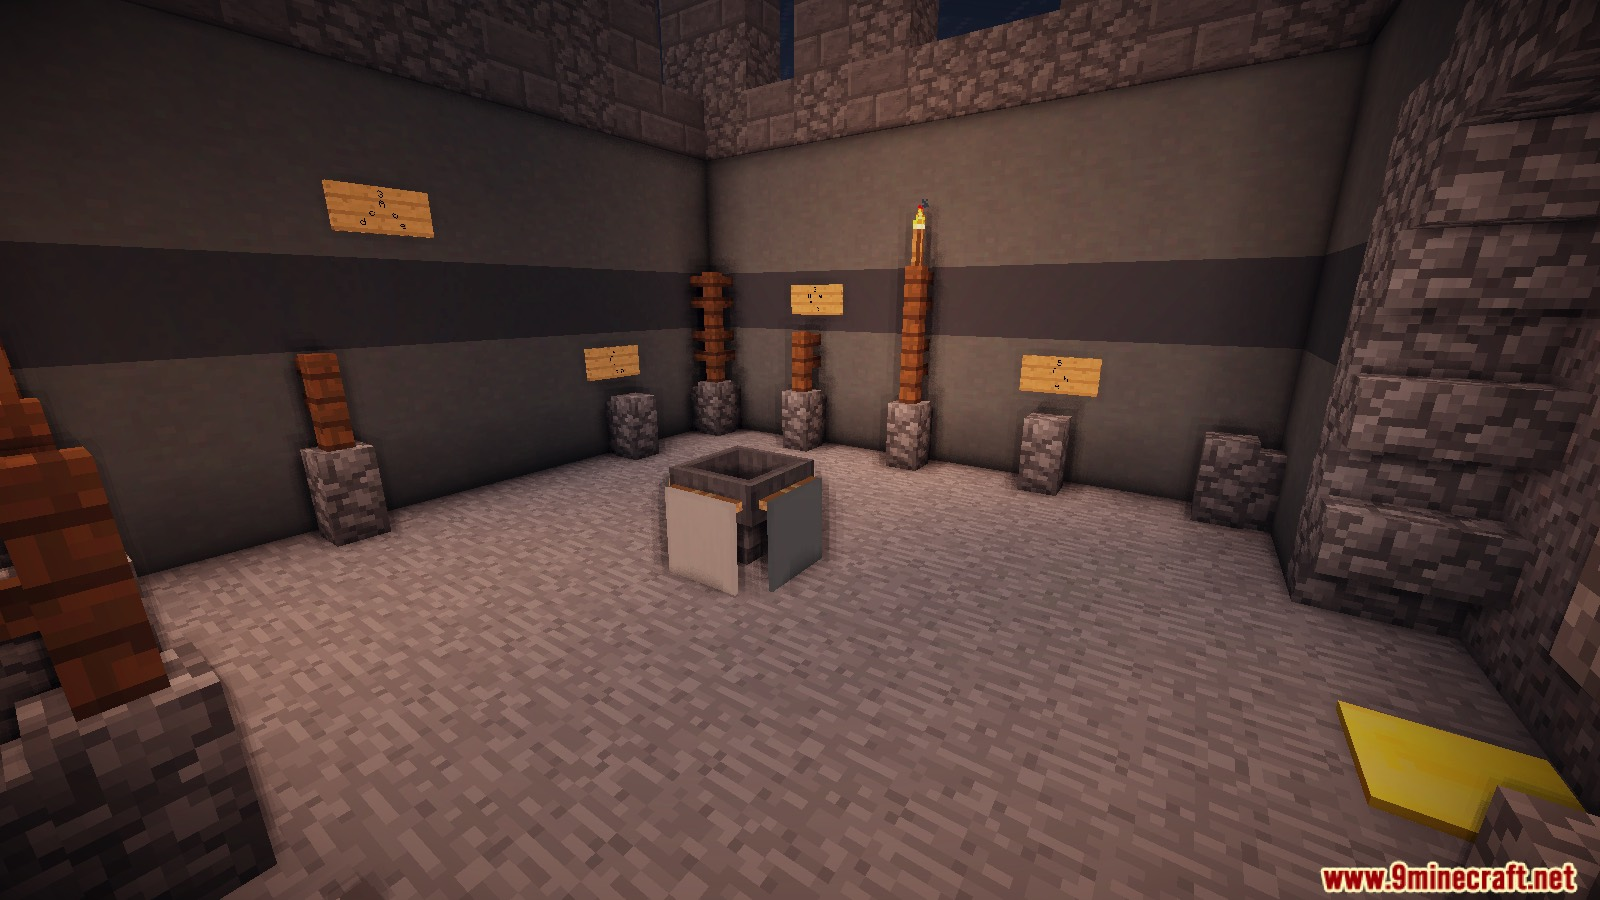 30 seconds escape room map for minecraft for Escape room equipment